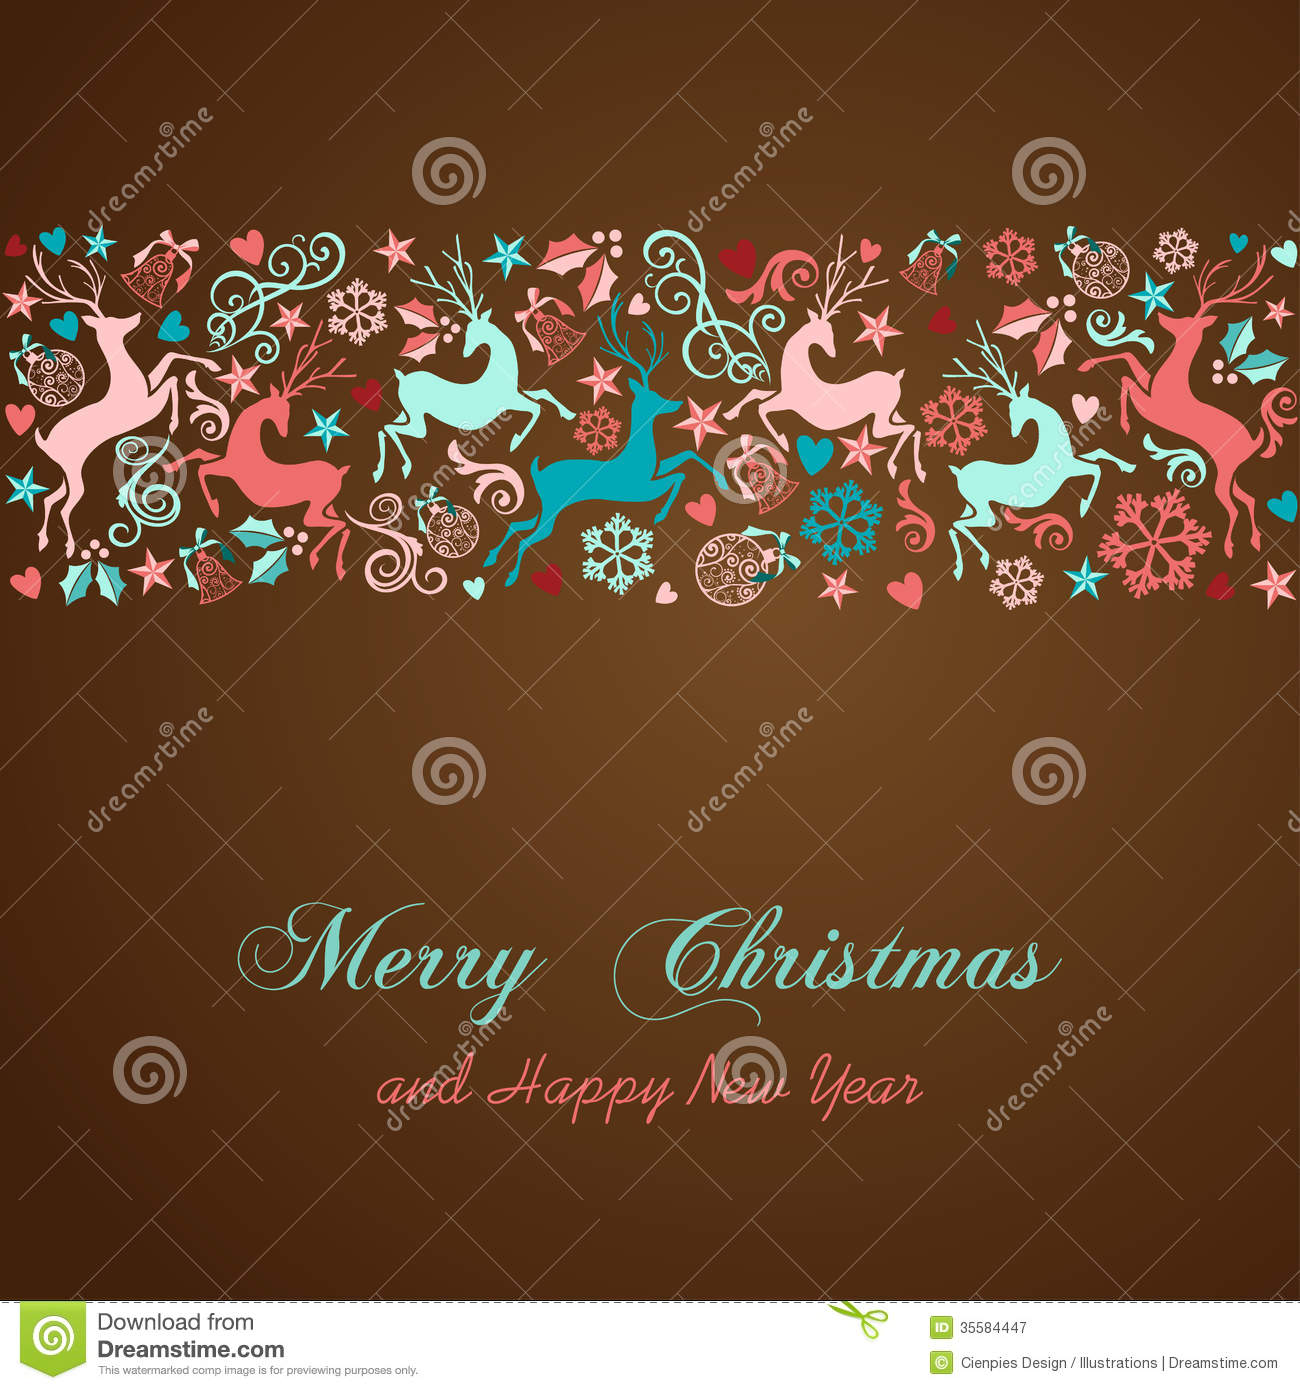 Merry Christmas And Happy New Year Greeting Card Stock Vector     Merry Christmas and Happy New Year greeting card